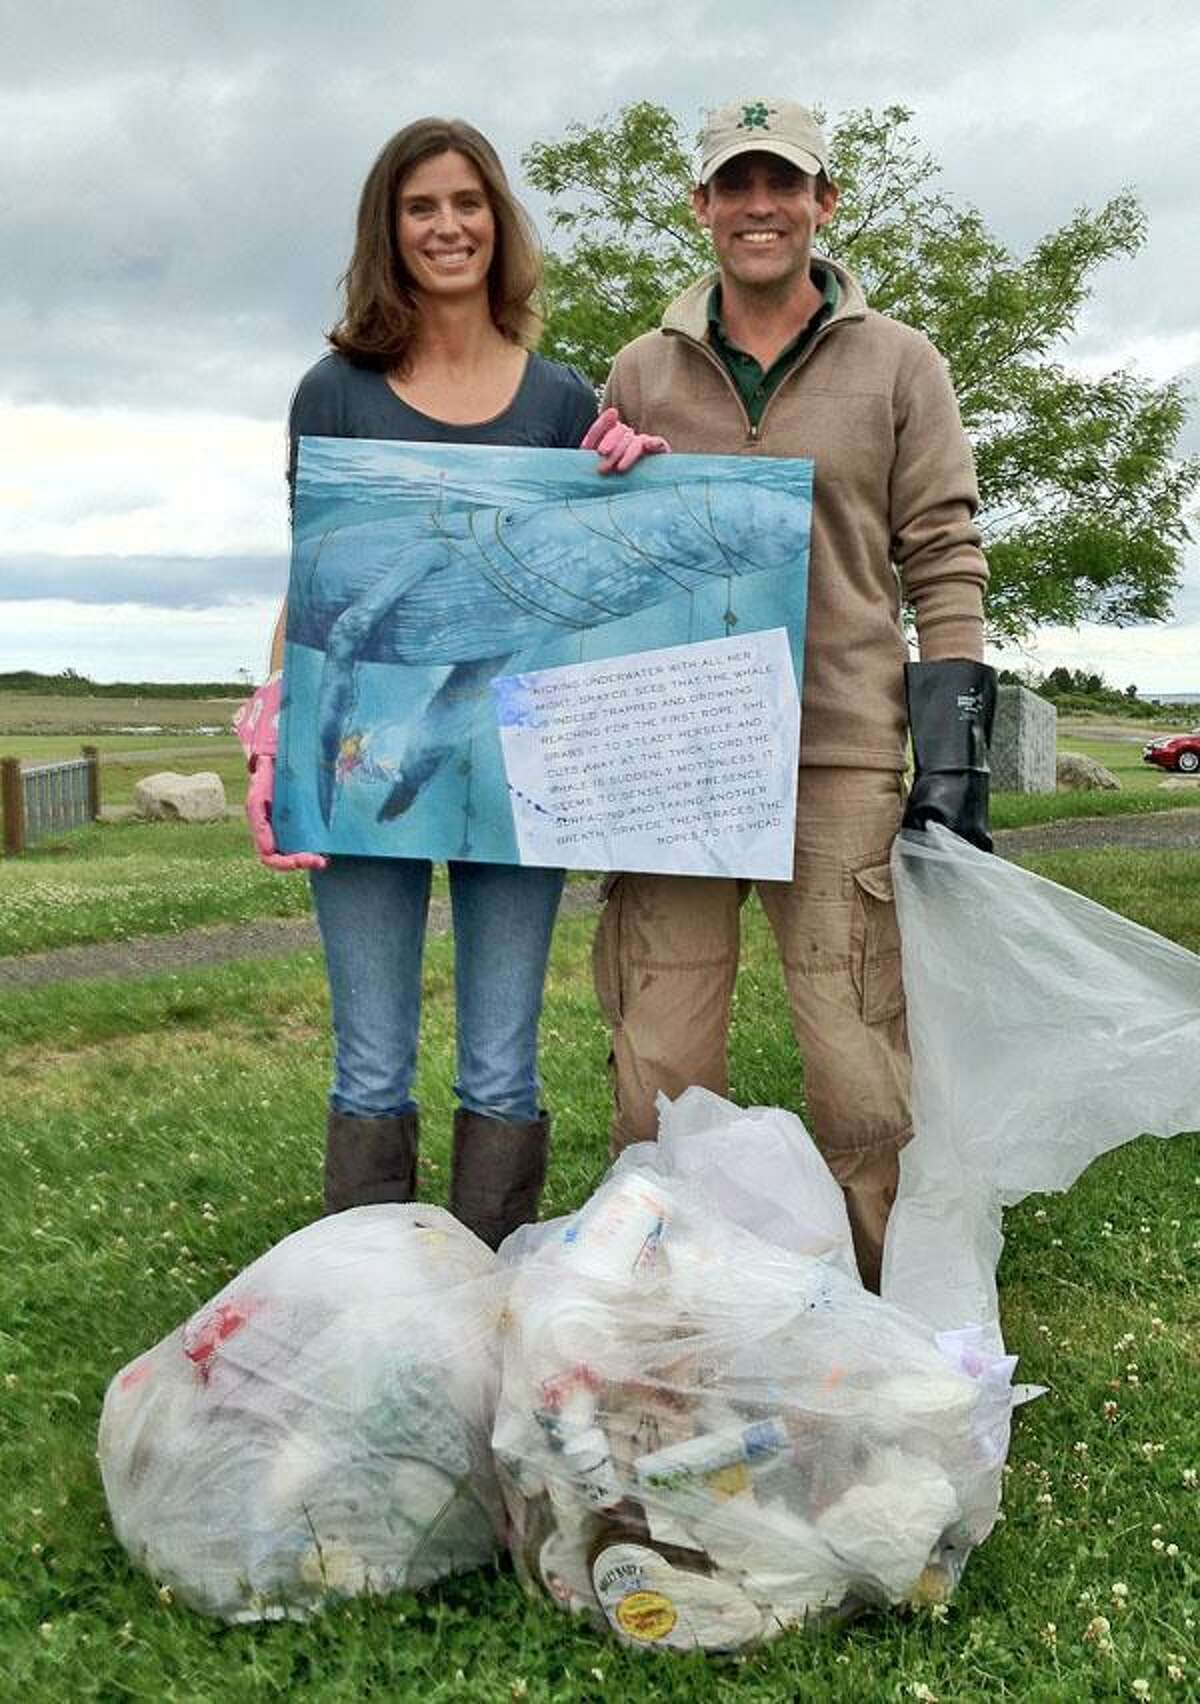 Anne Kubitsky and Ranger Russ Miller on the grounds of the Meigs Point Nature Center at Hammonasset Beach State Park for an environmental clean-up. Photo courtesy of Rebecca Williams